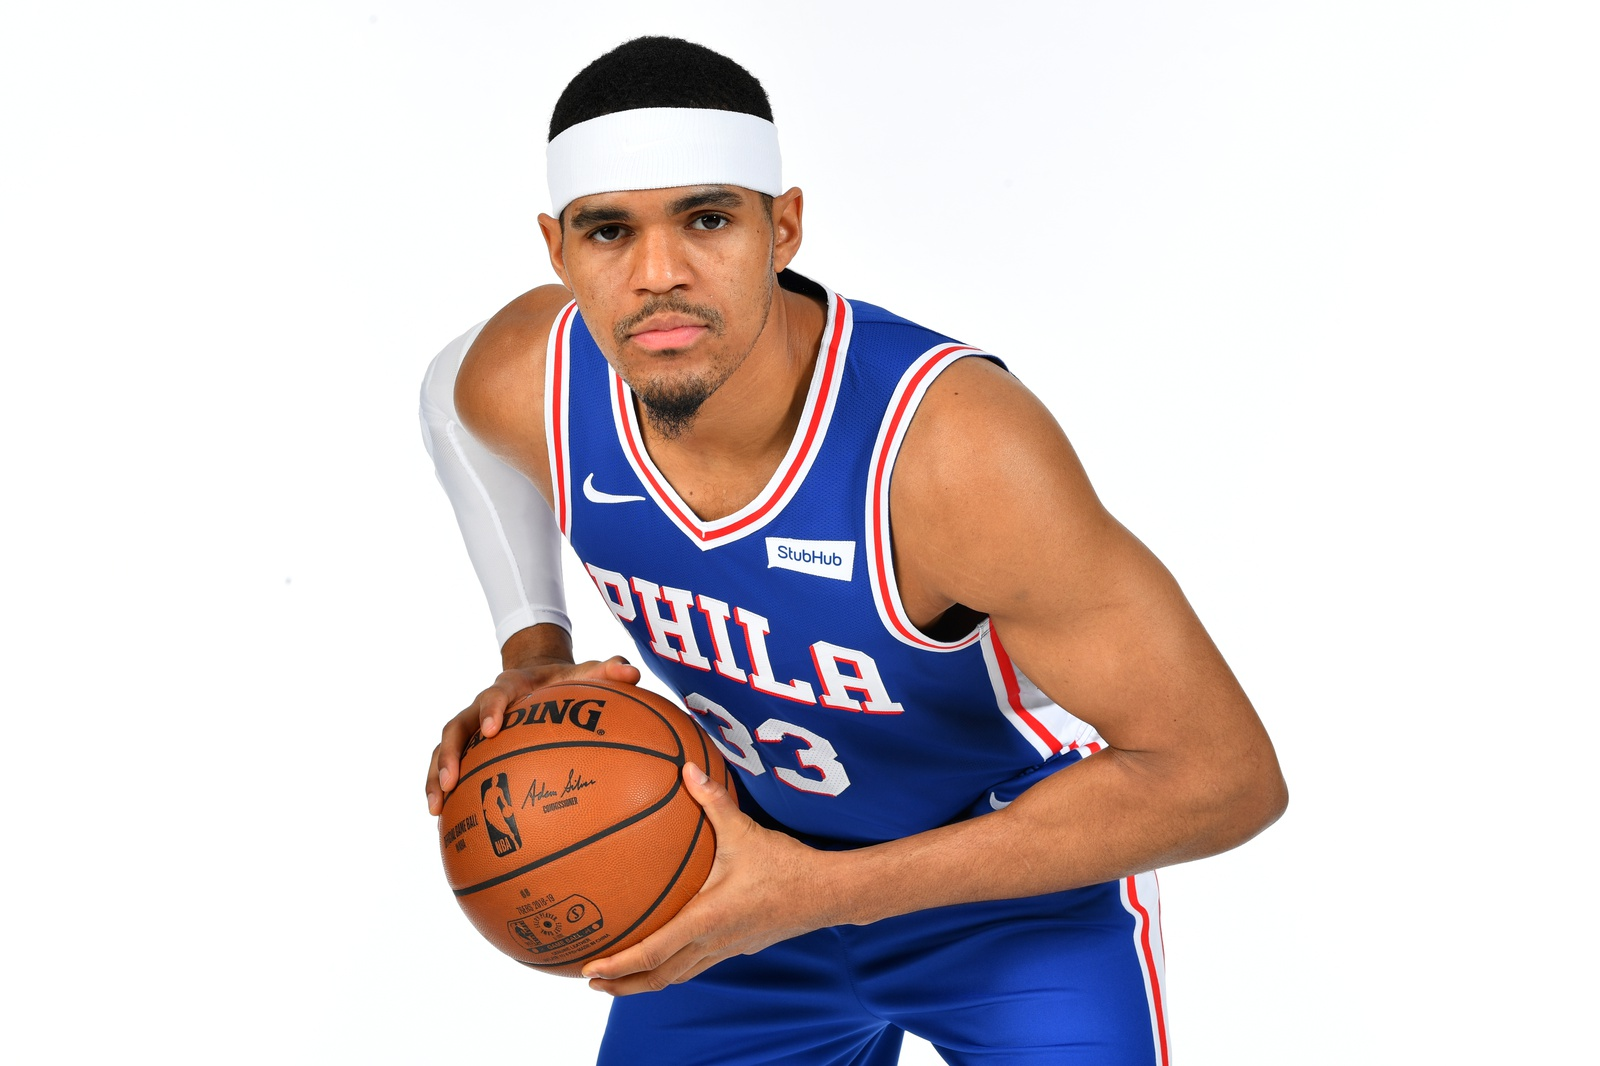 Tobias Harris #33 of the Philadelphia 76ers poses for a portrait on February 7, 2019 at the Philadelphia 76ers Training Complex in Camden, New Jersey.